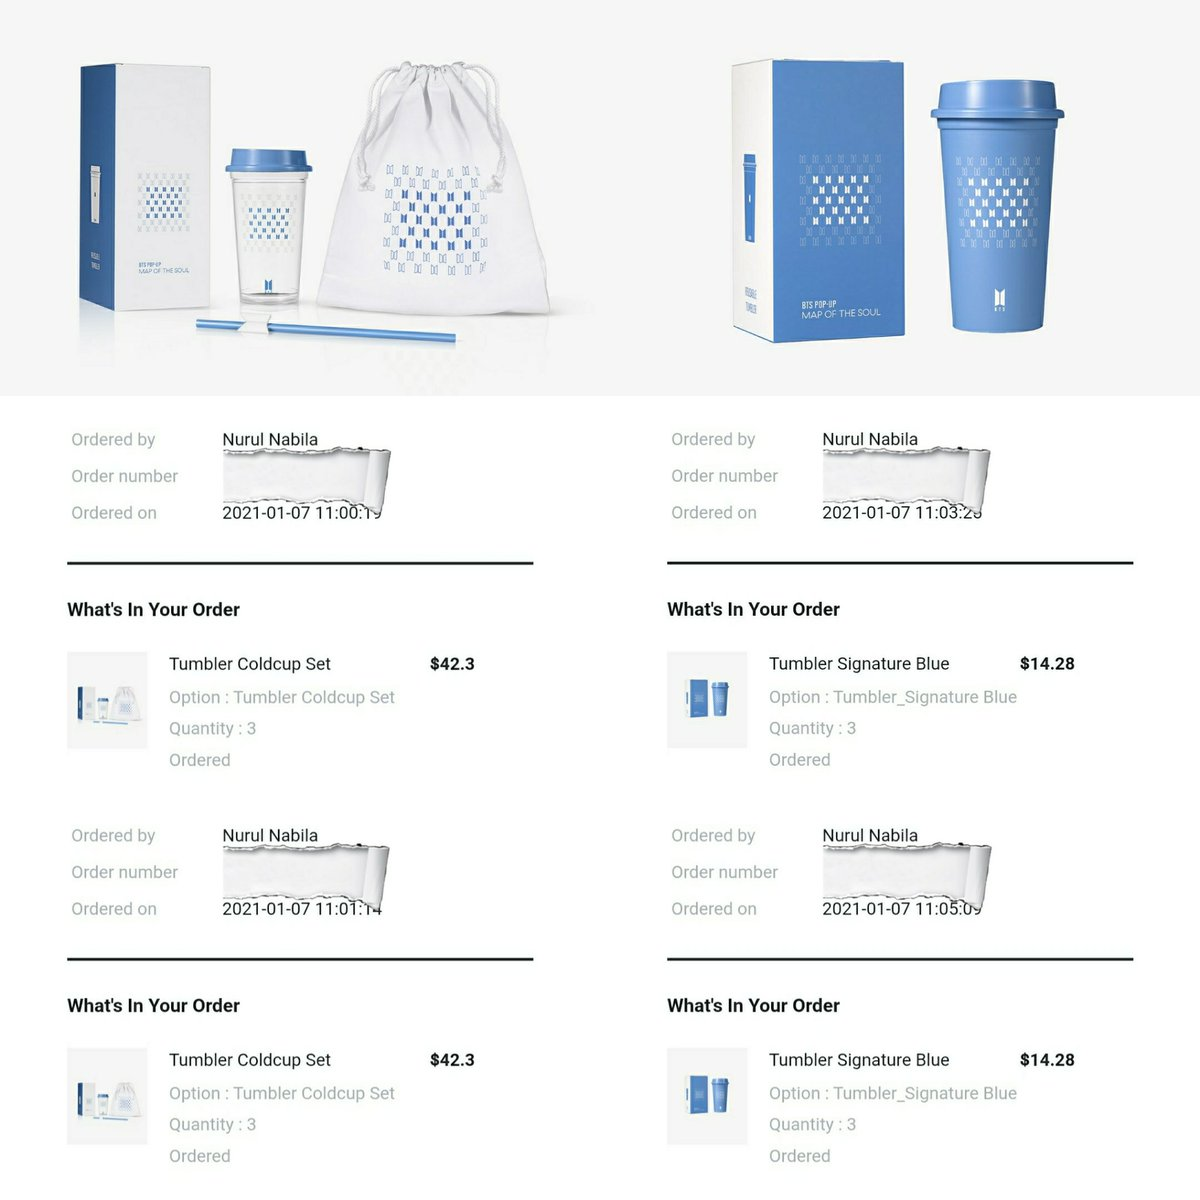 [PREORDER] #BTS_POPUP #MAP_OF_THE_SOUL Tumbler Coldcup Set & Tumbler Signature Blue (7-24/1). ❣  Secured incoming stocks - FPFS. 😻  Coldcup Set: 🏷 RM90 Signature Blue: 🏷 RM50 📦 TBA  #Weverse #BTSARMY #Malaysia #PreOrder  📣  🔁 Help RT @BTStrading_MY